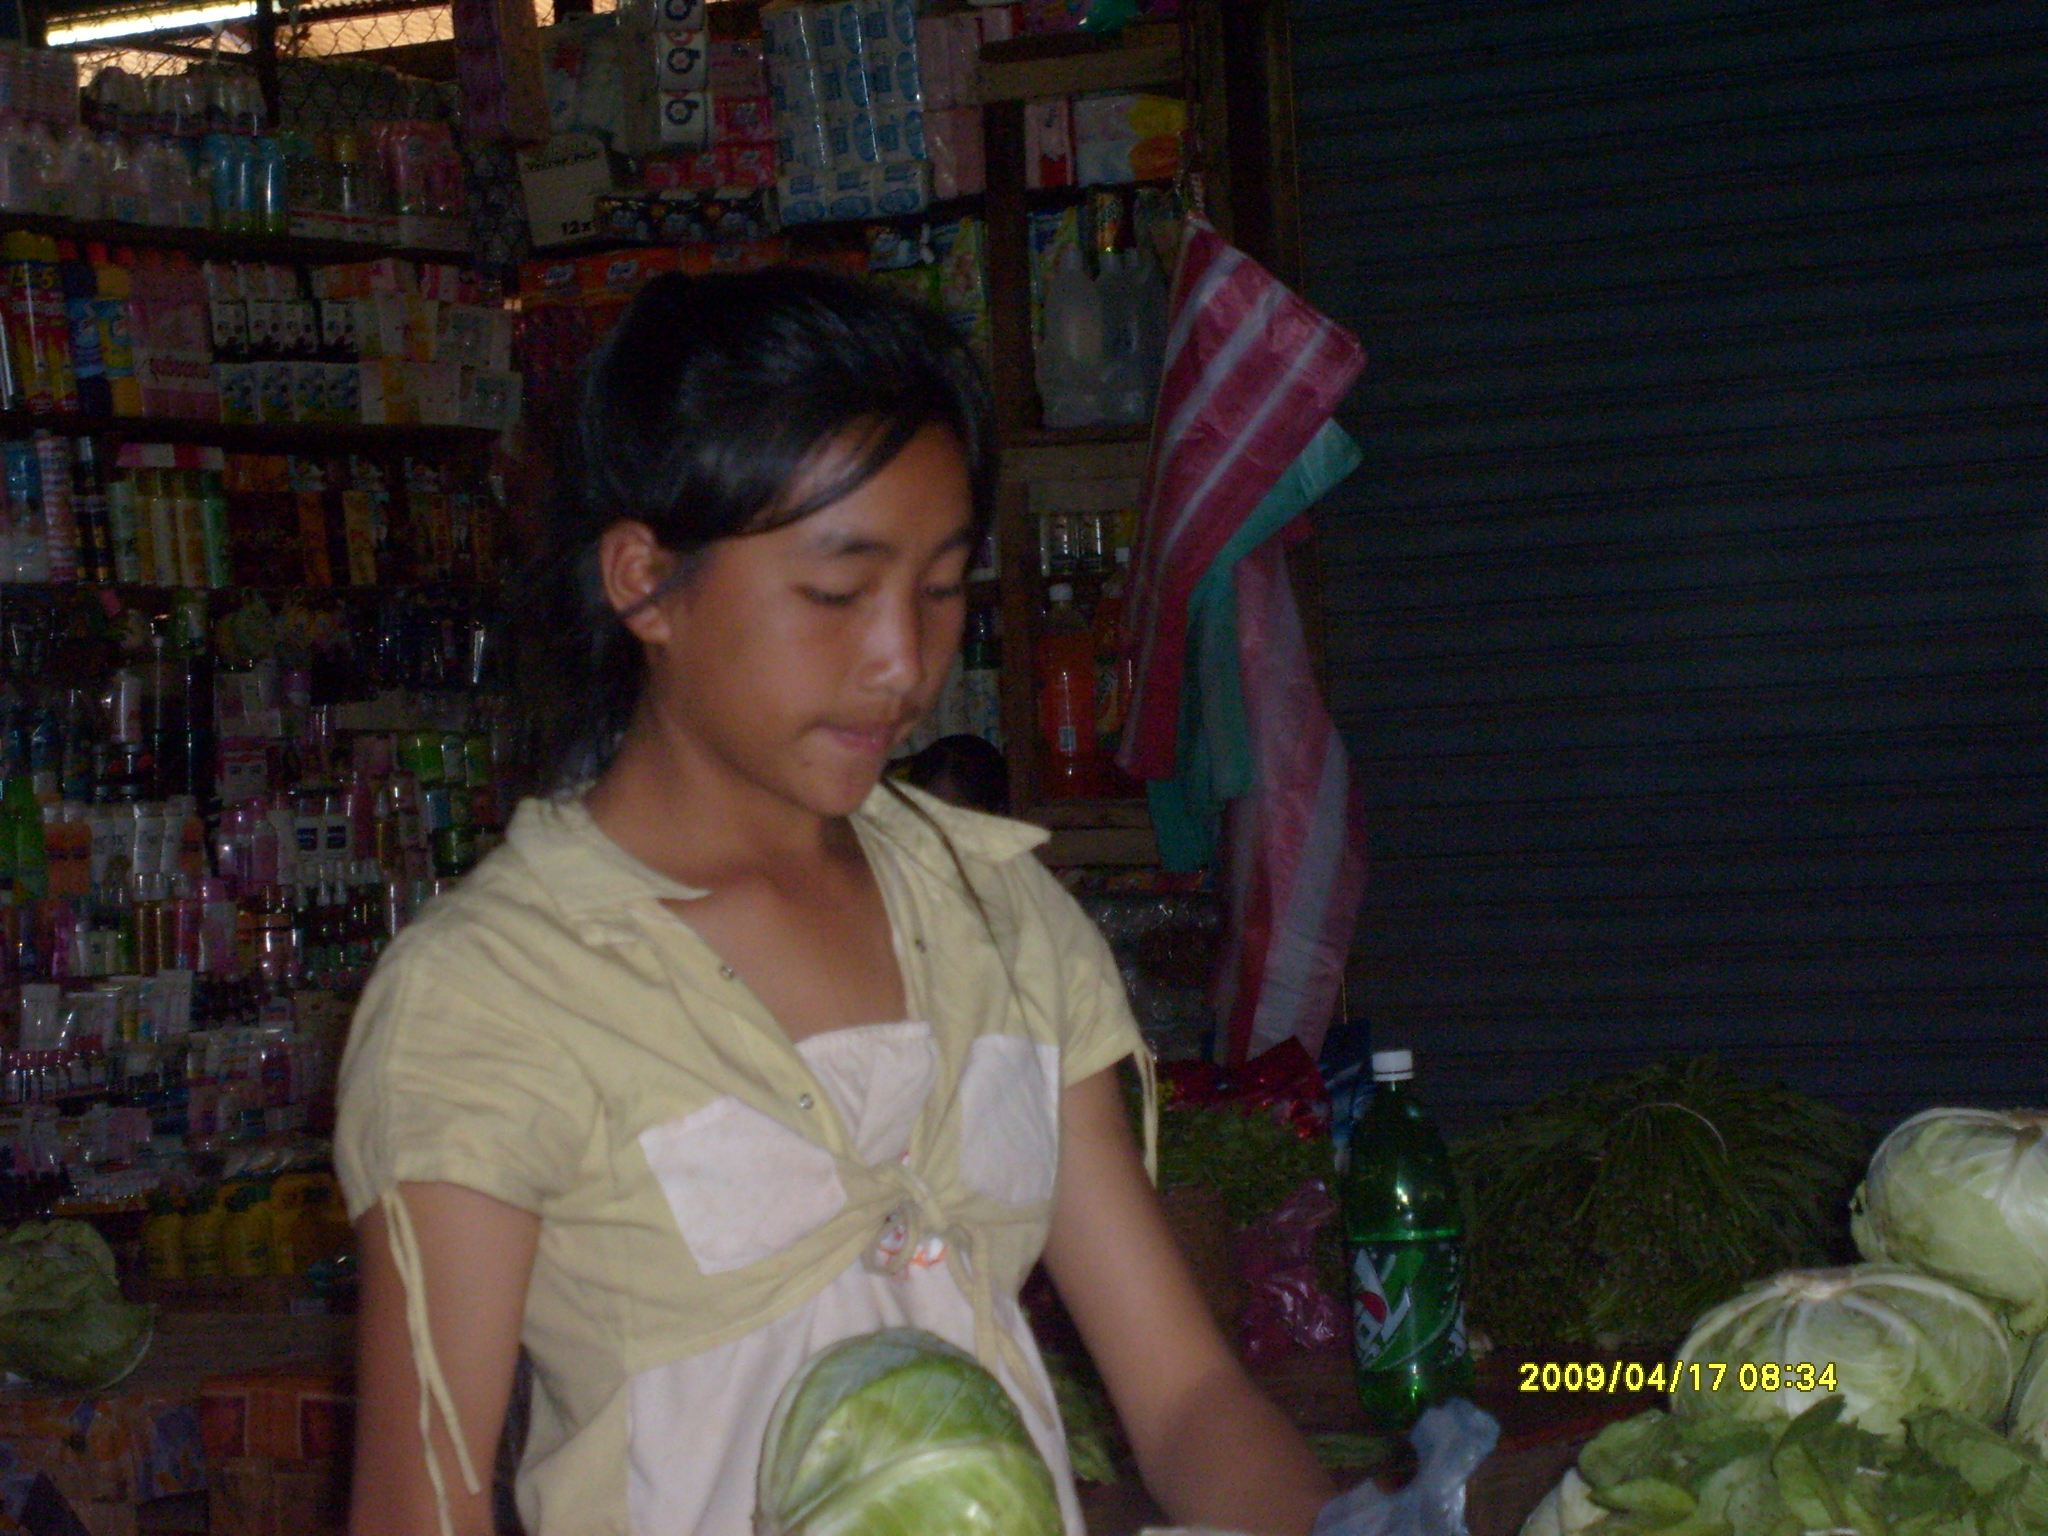 This 12-year-old girl mans her mother's produce booth at the wet market single-handedly from dawn to dusk every day.